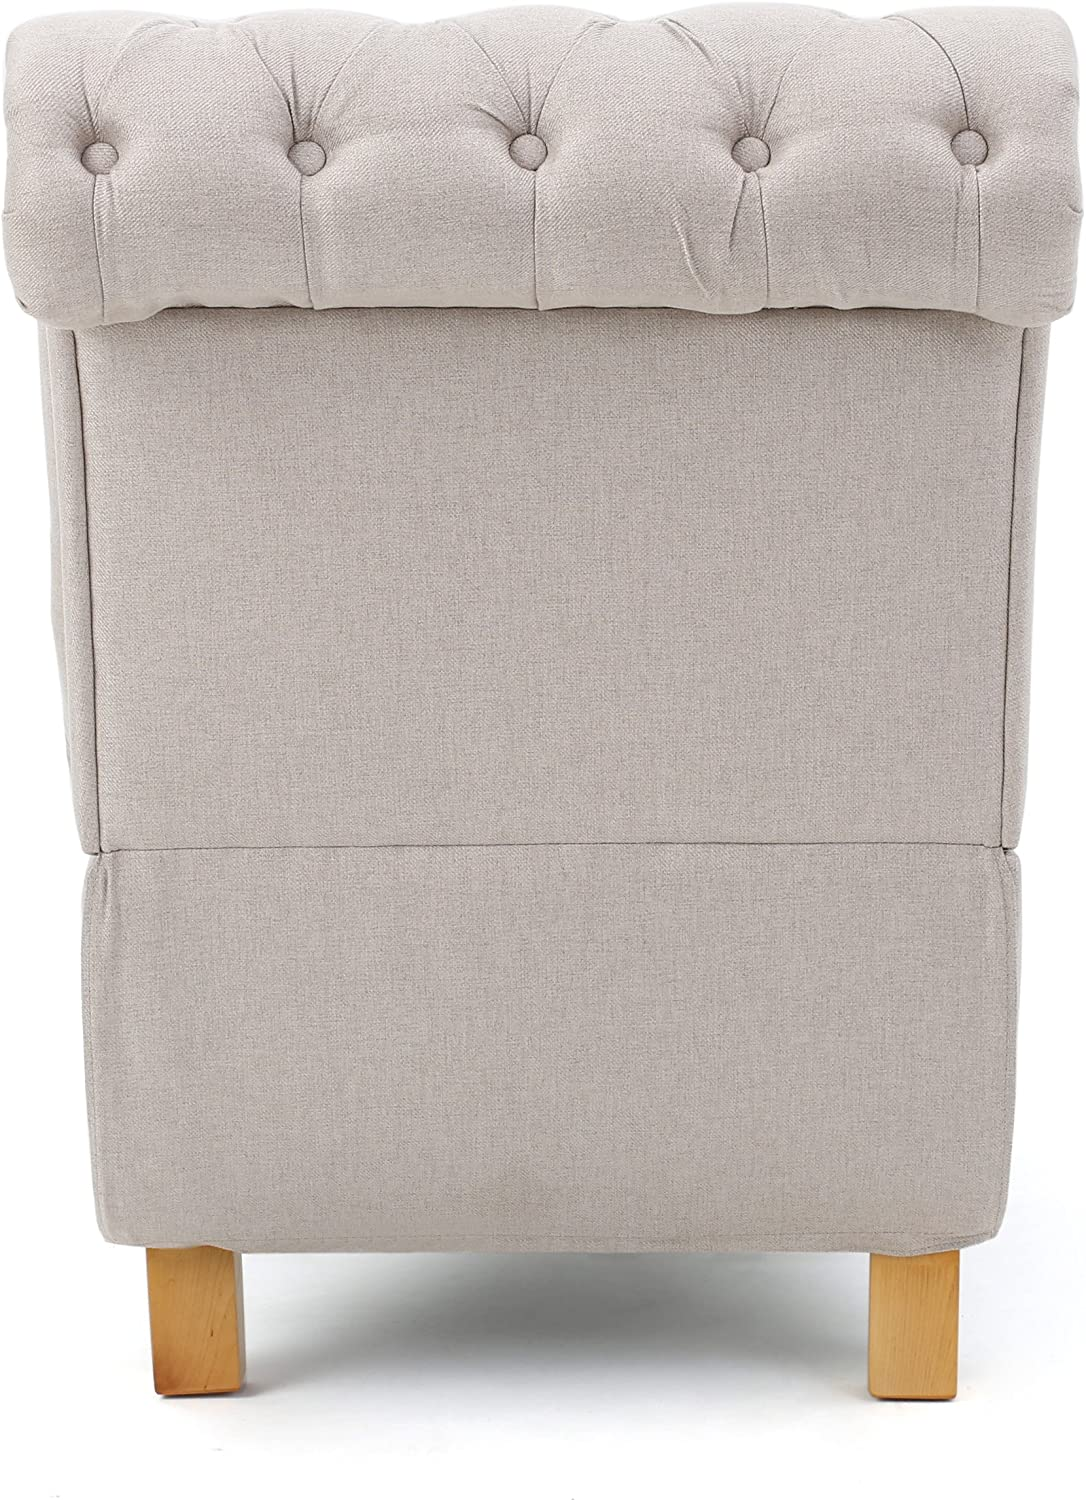 Christopher Knight Home Bellanca Fabric Tufted Chaise Lounge Chair Medium Beige